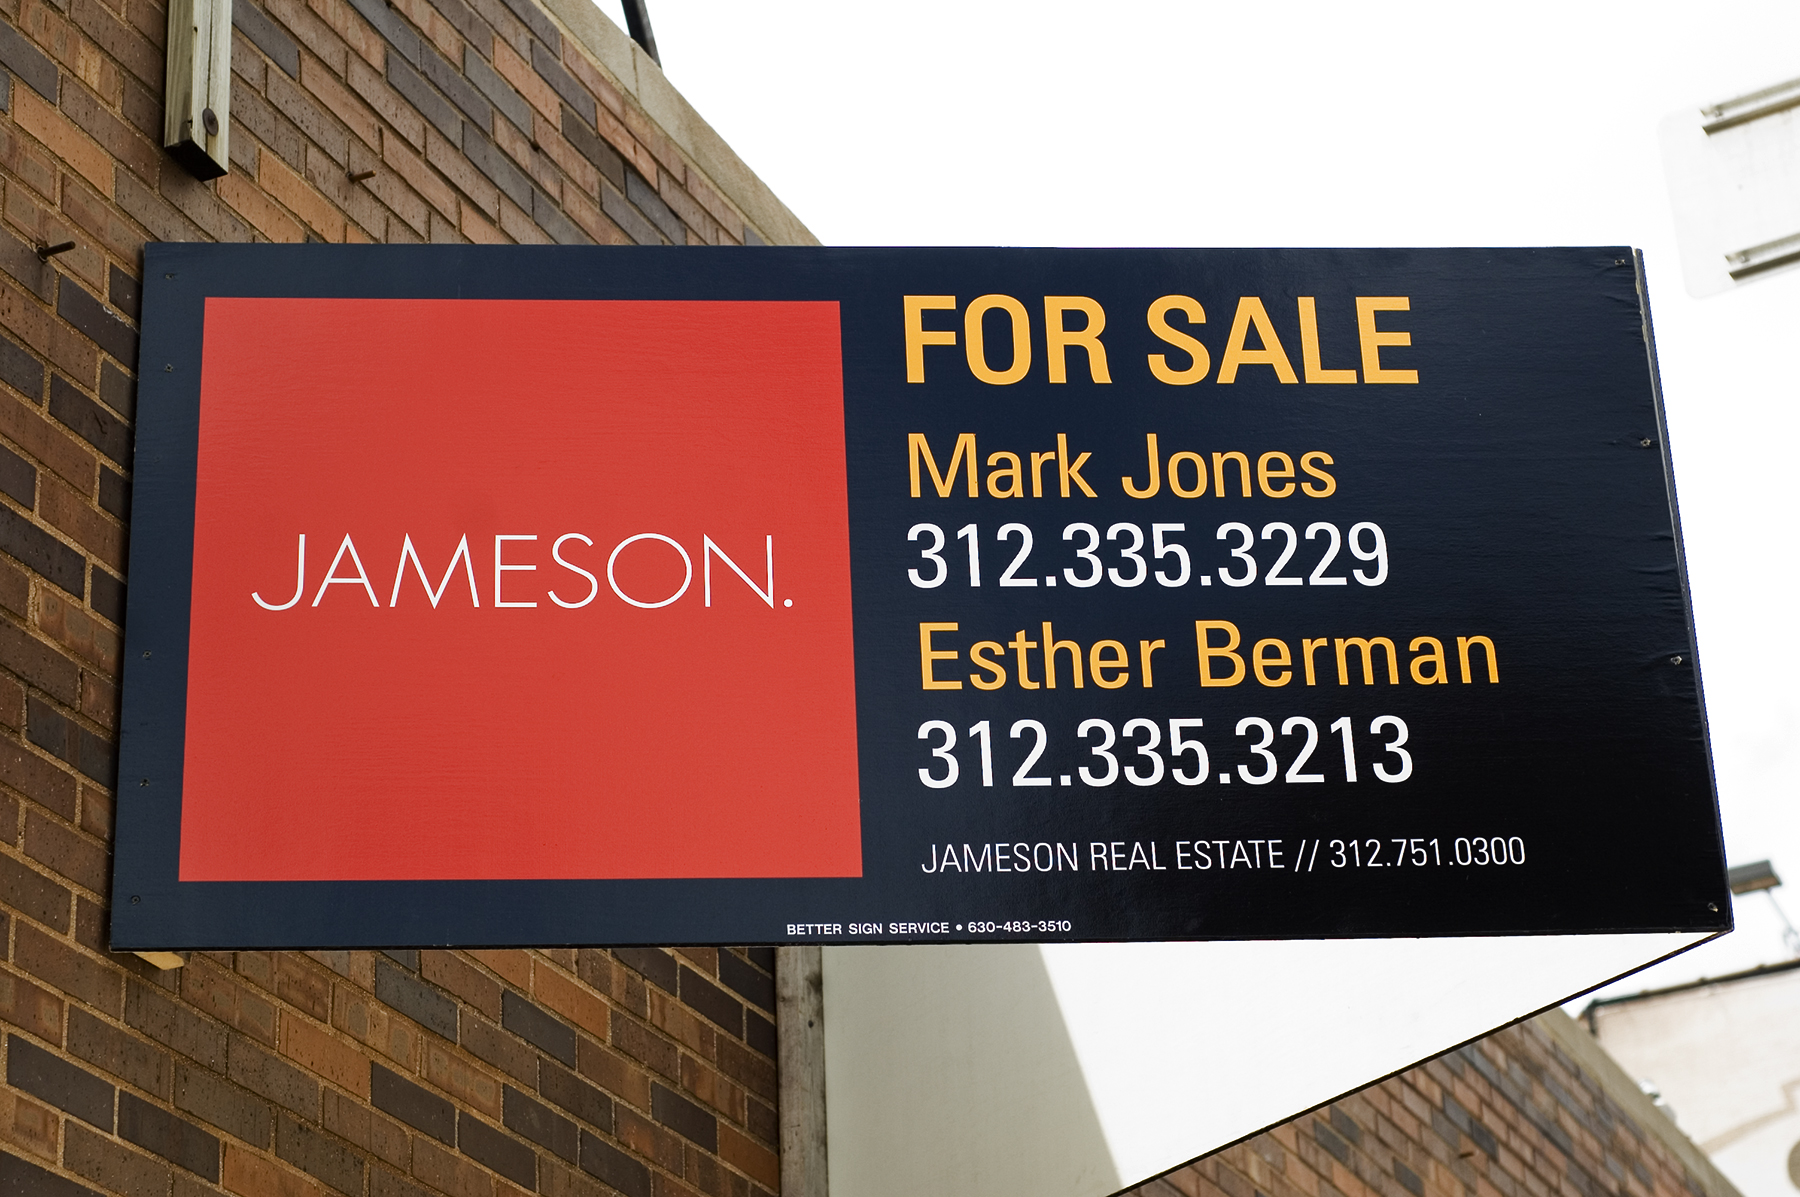 Jameson_PropertySigns.jpg